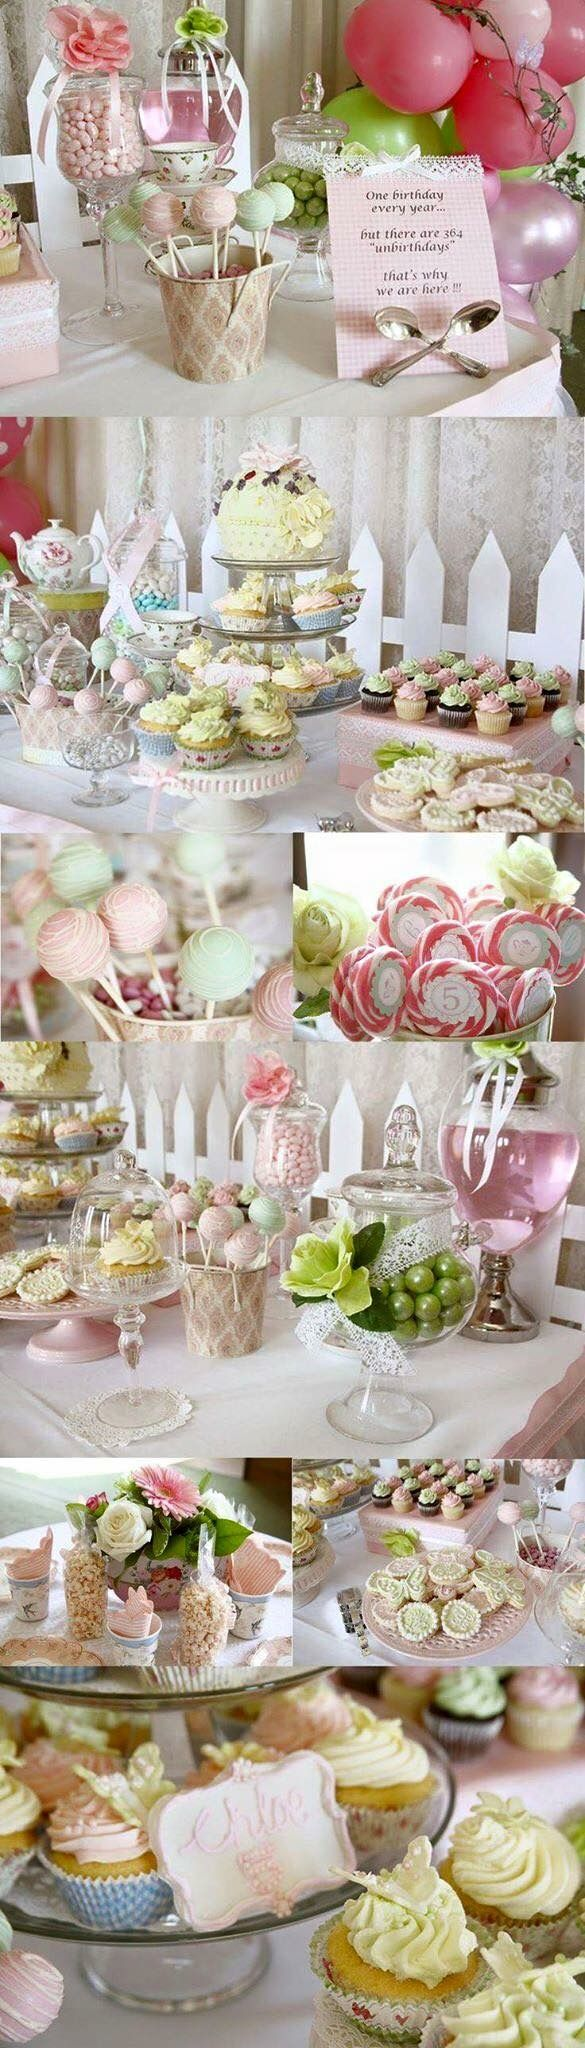 50 best Tea Party Invitations images on Pinterest | Caramel, Cards and  Decoration